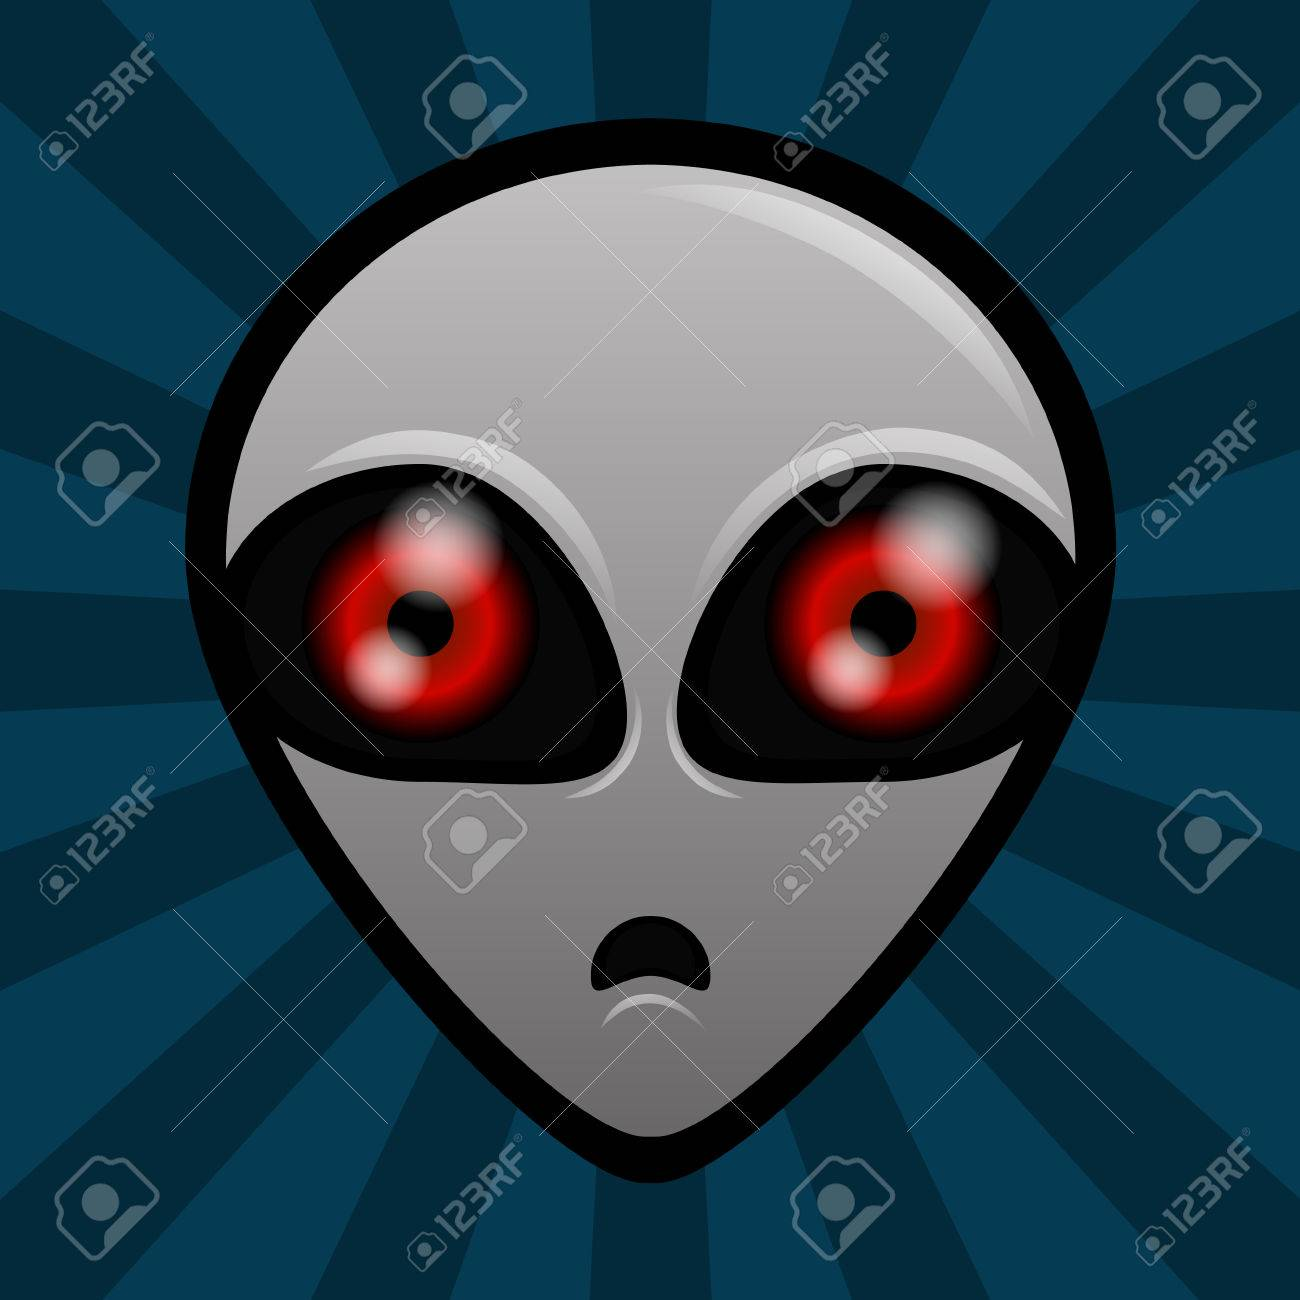 extraterrestre yeux rouge